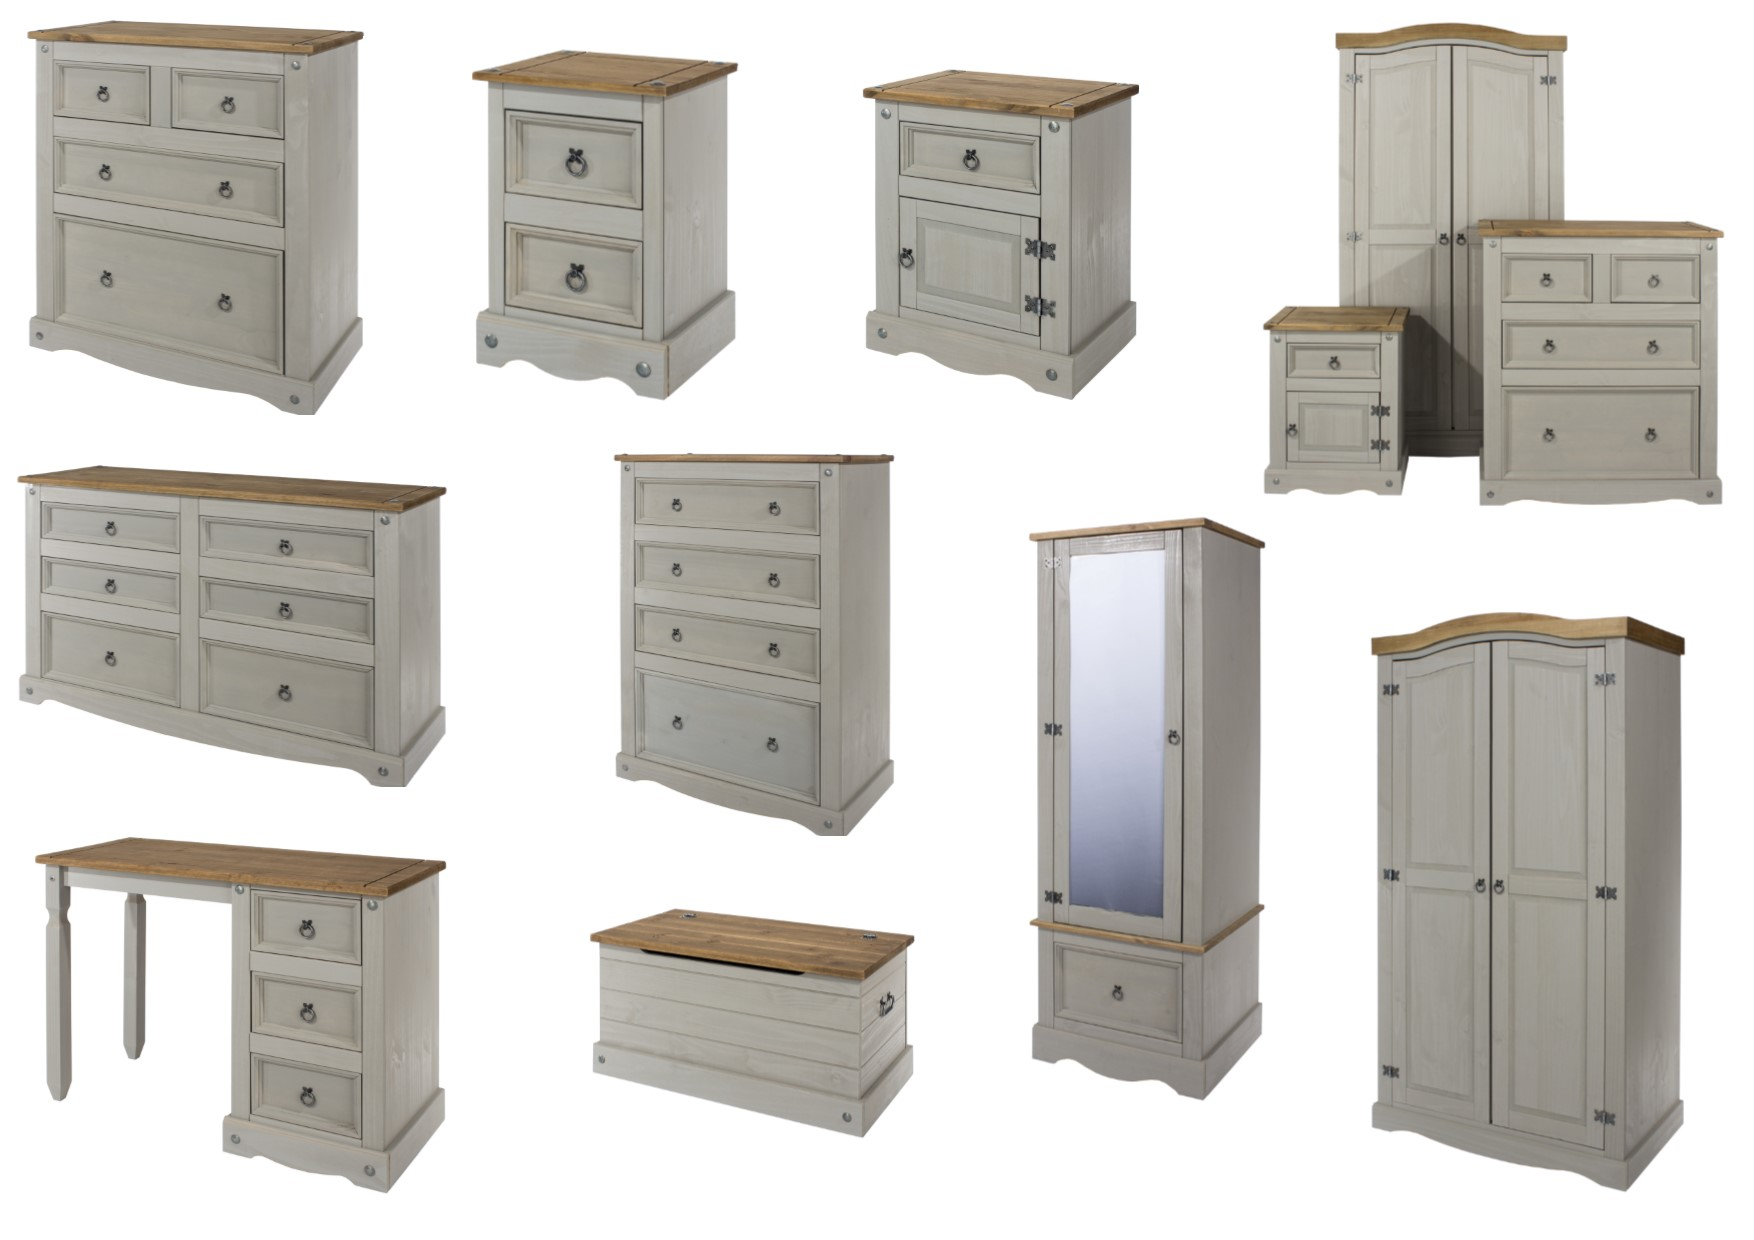 reputable site ab36e 4a1b1 Details about Premium Corona Grey Washed Bedroom Furniture - Bedside  Drawers Wardrobe Storage